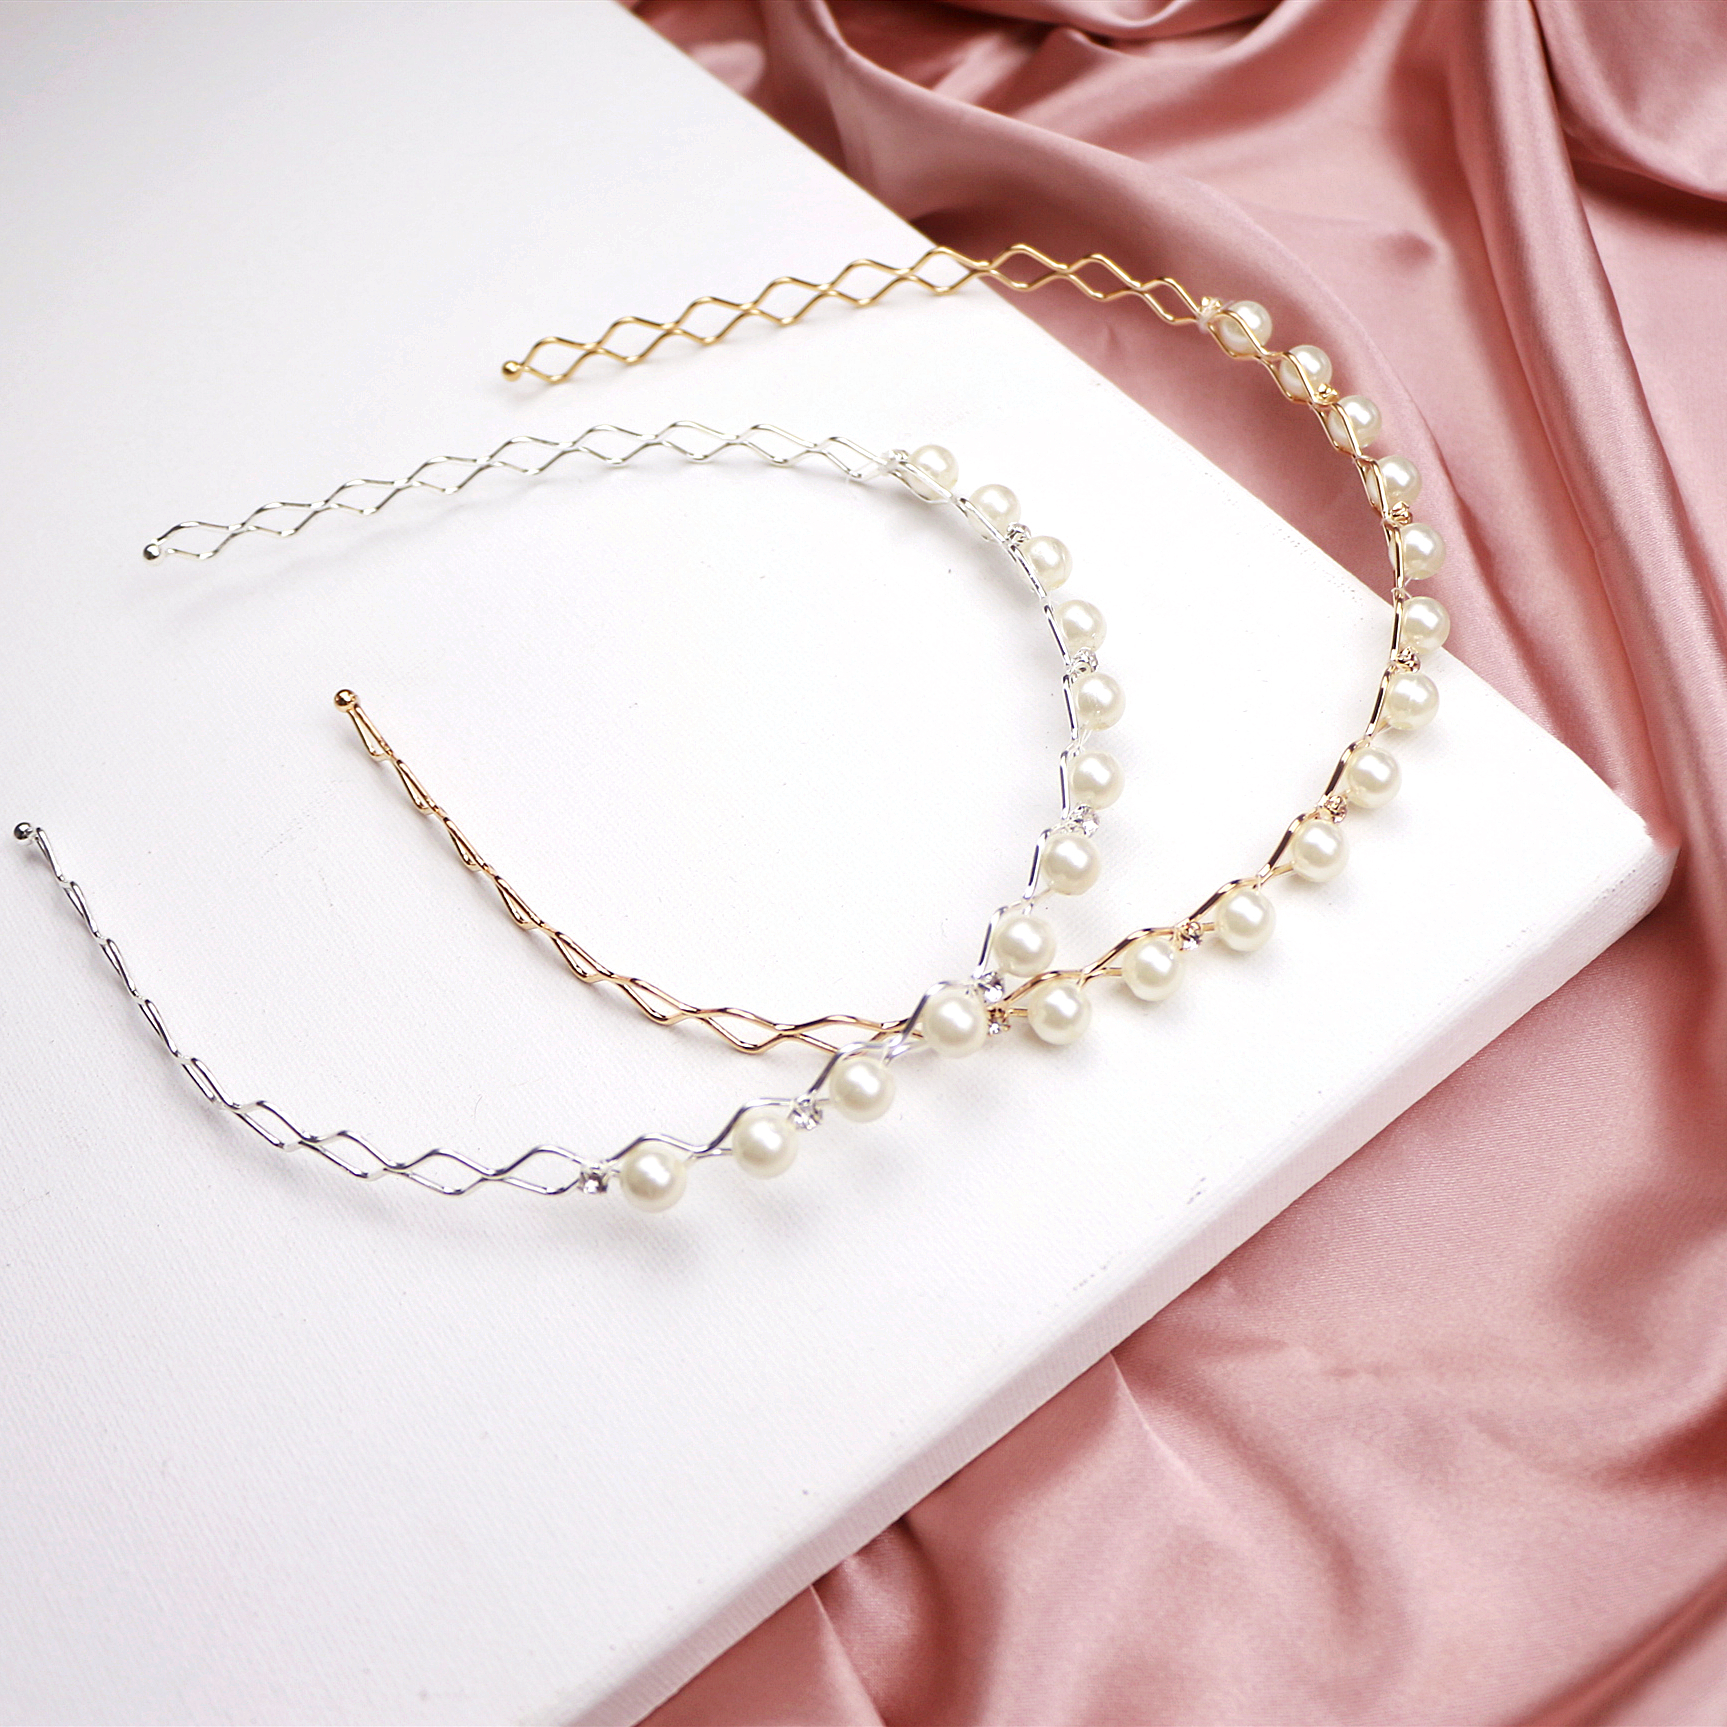 2019 New Exquisite Pearl Diamond Geometric Wave Women Hair Hoop Hair Band For Girls Princess Sweet Headband Hair Accessories